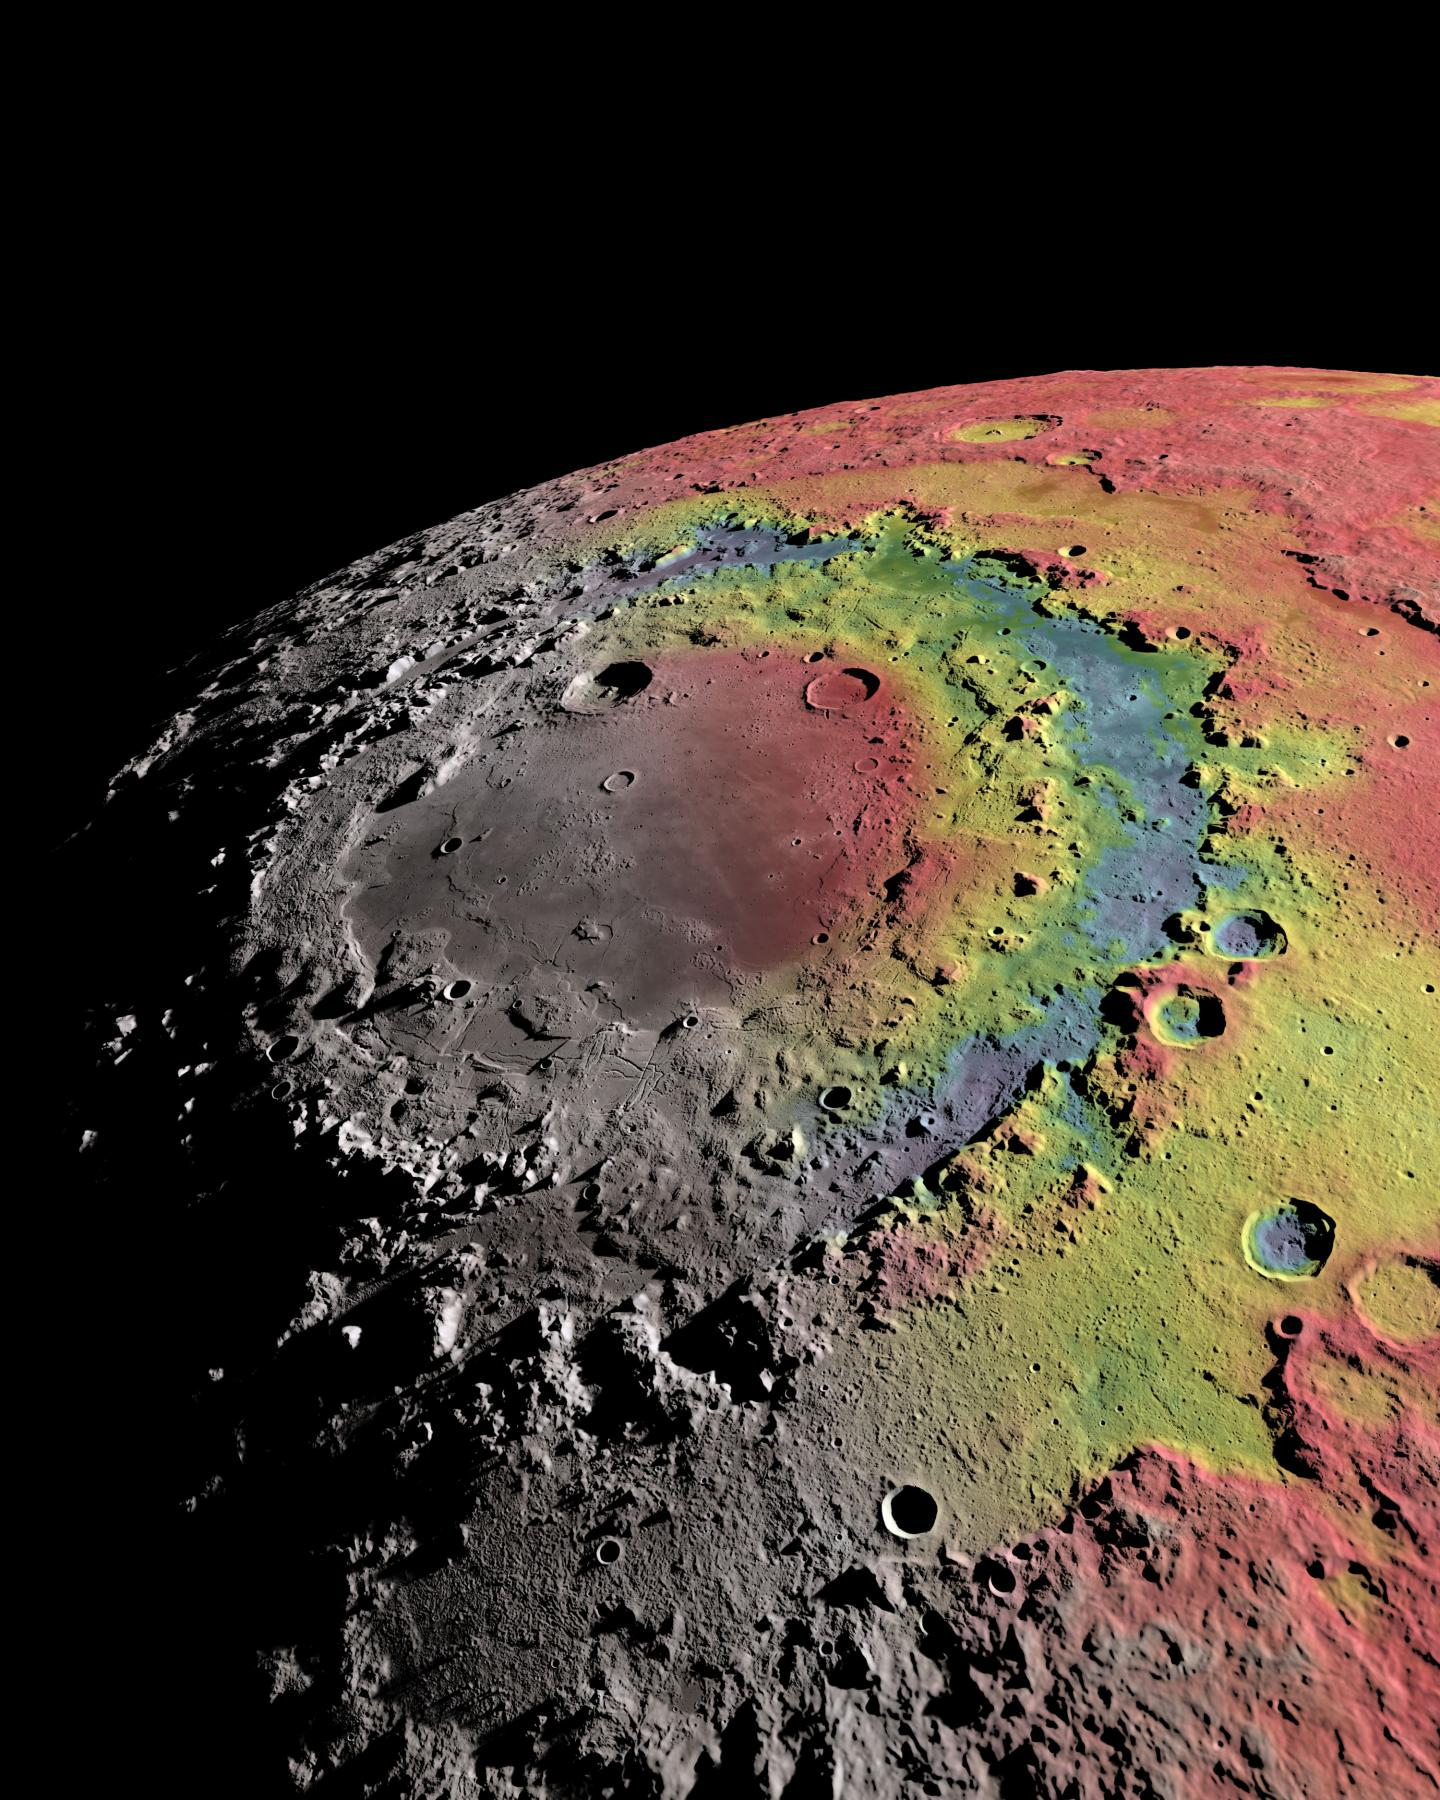 impact craters nasa - photo #39